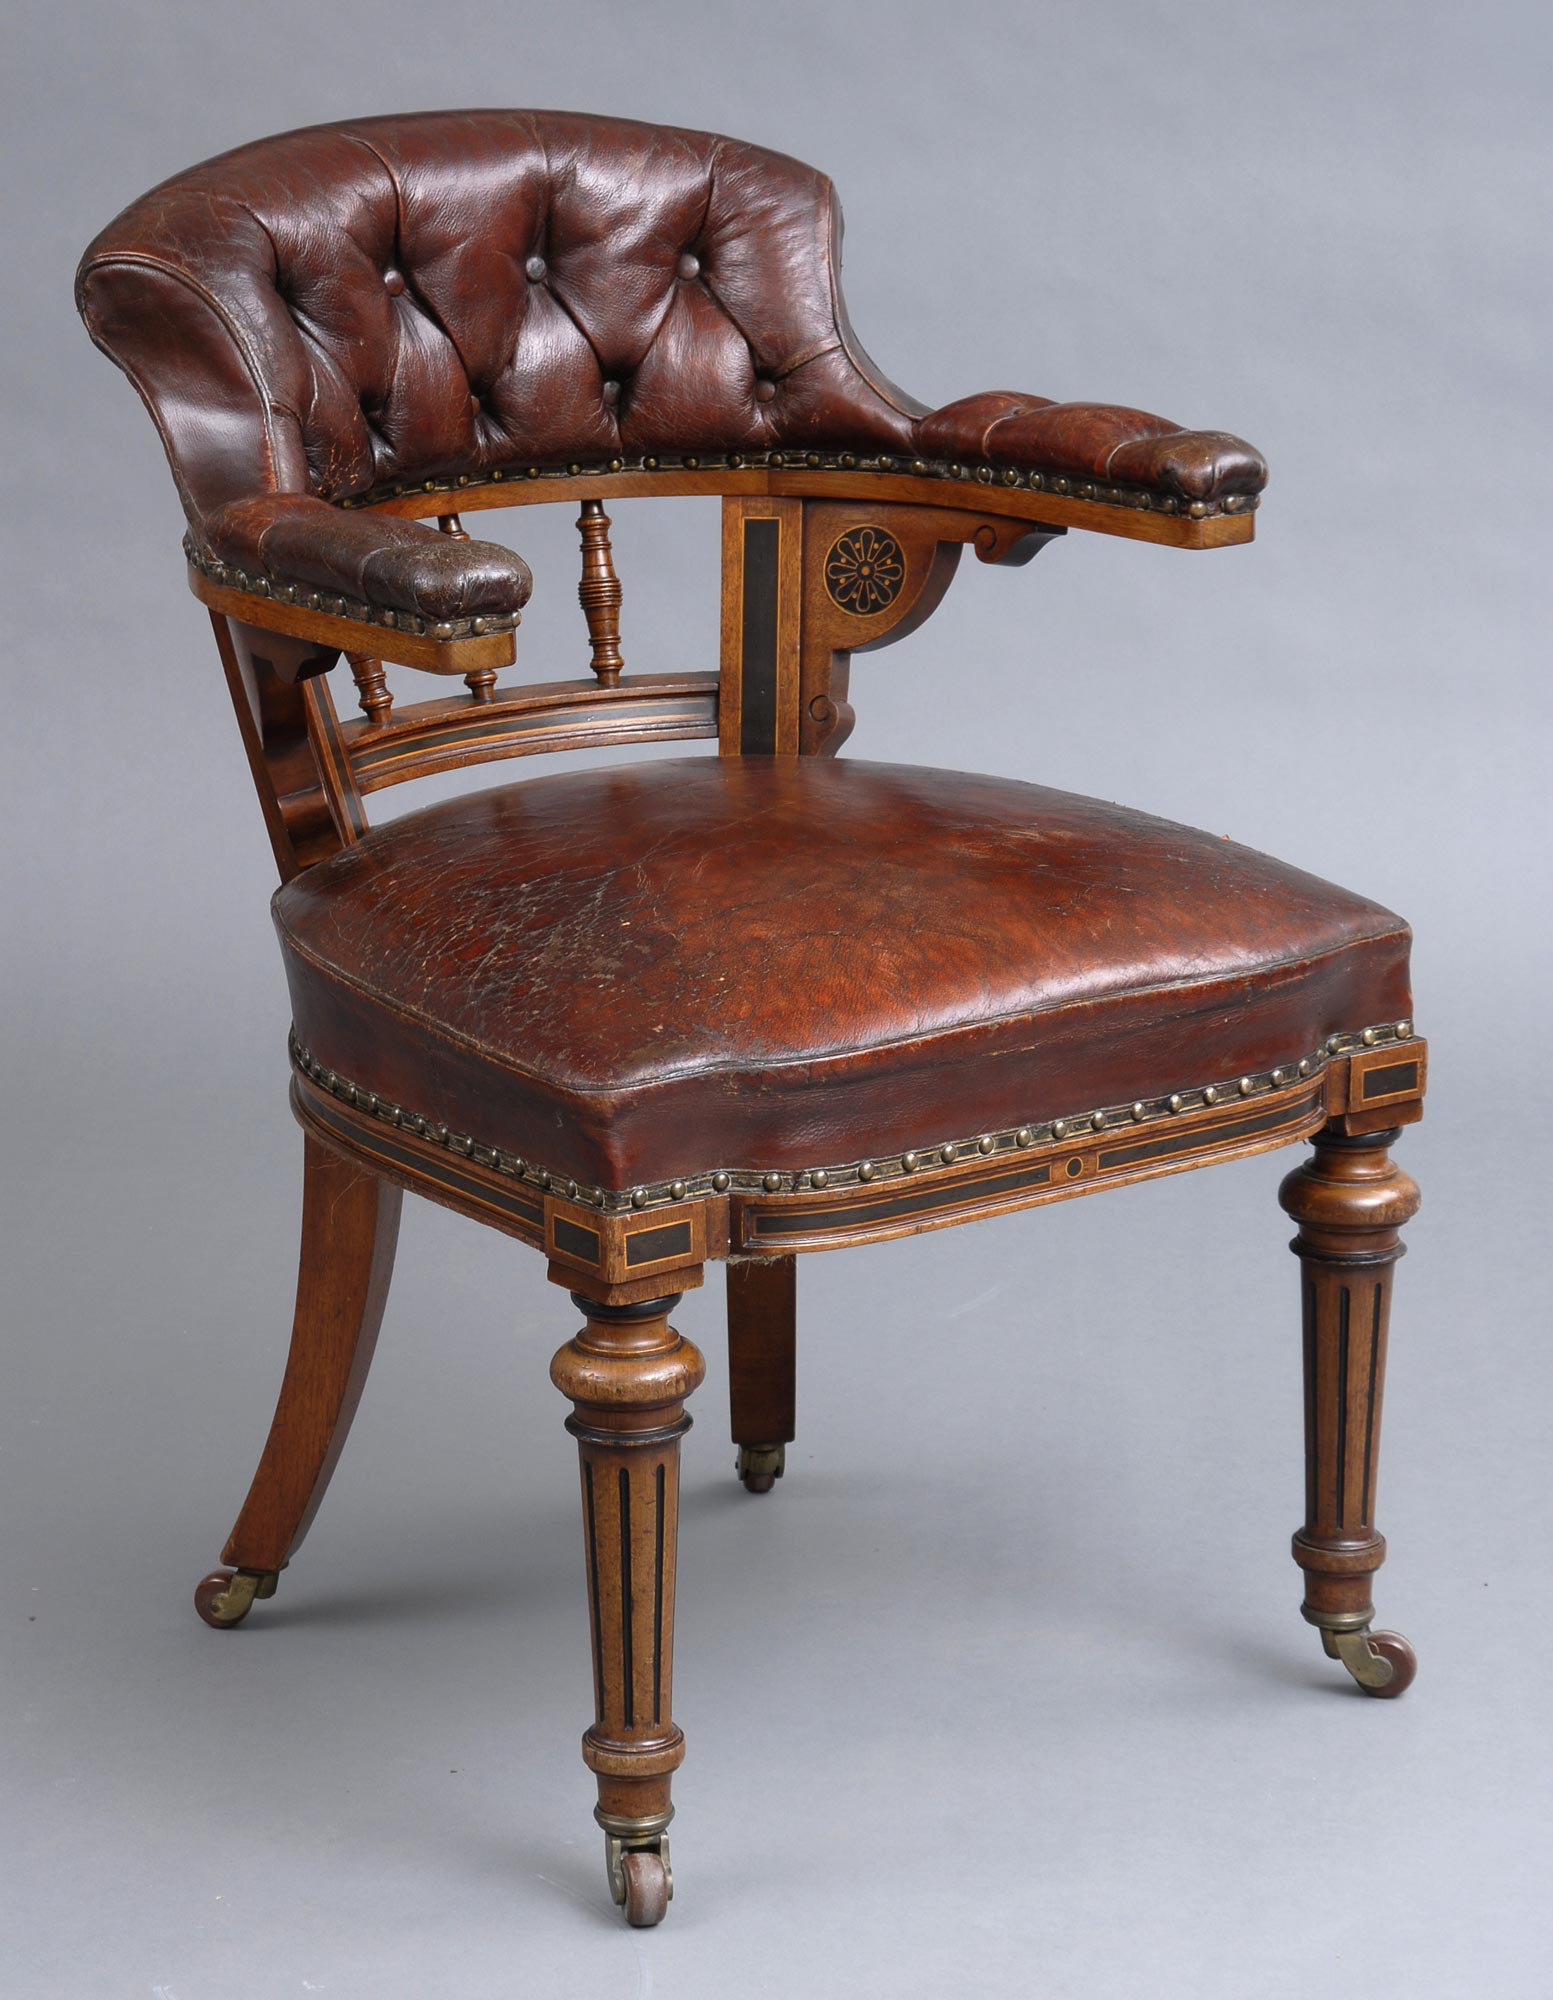 English Antique Victorian Oak U0026 Leather Desk Chair By Marsh, Jones U0026 Cribb,  Circa